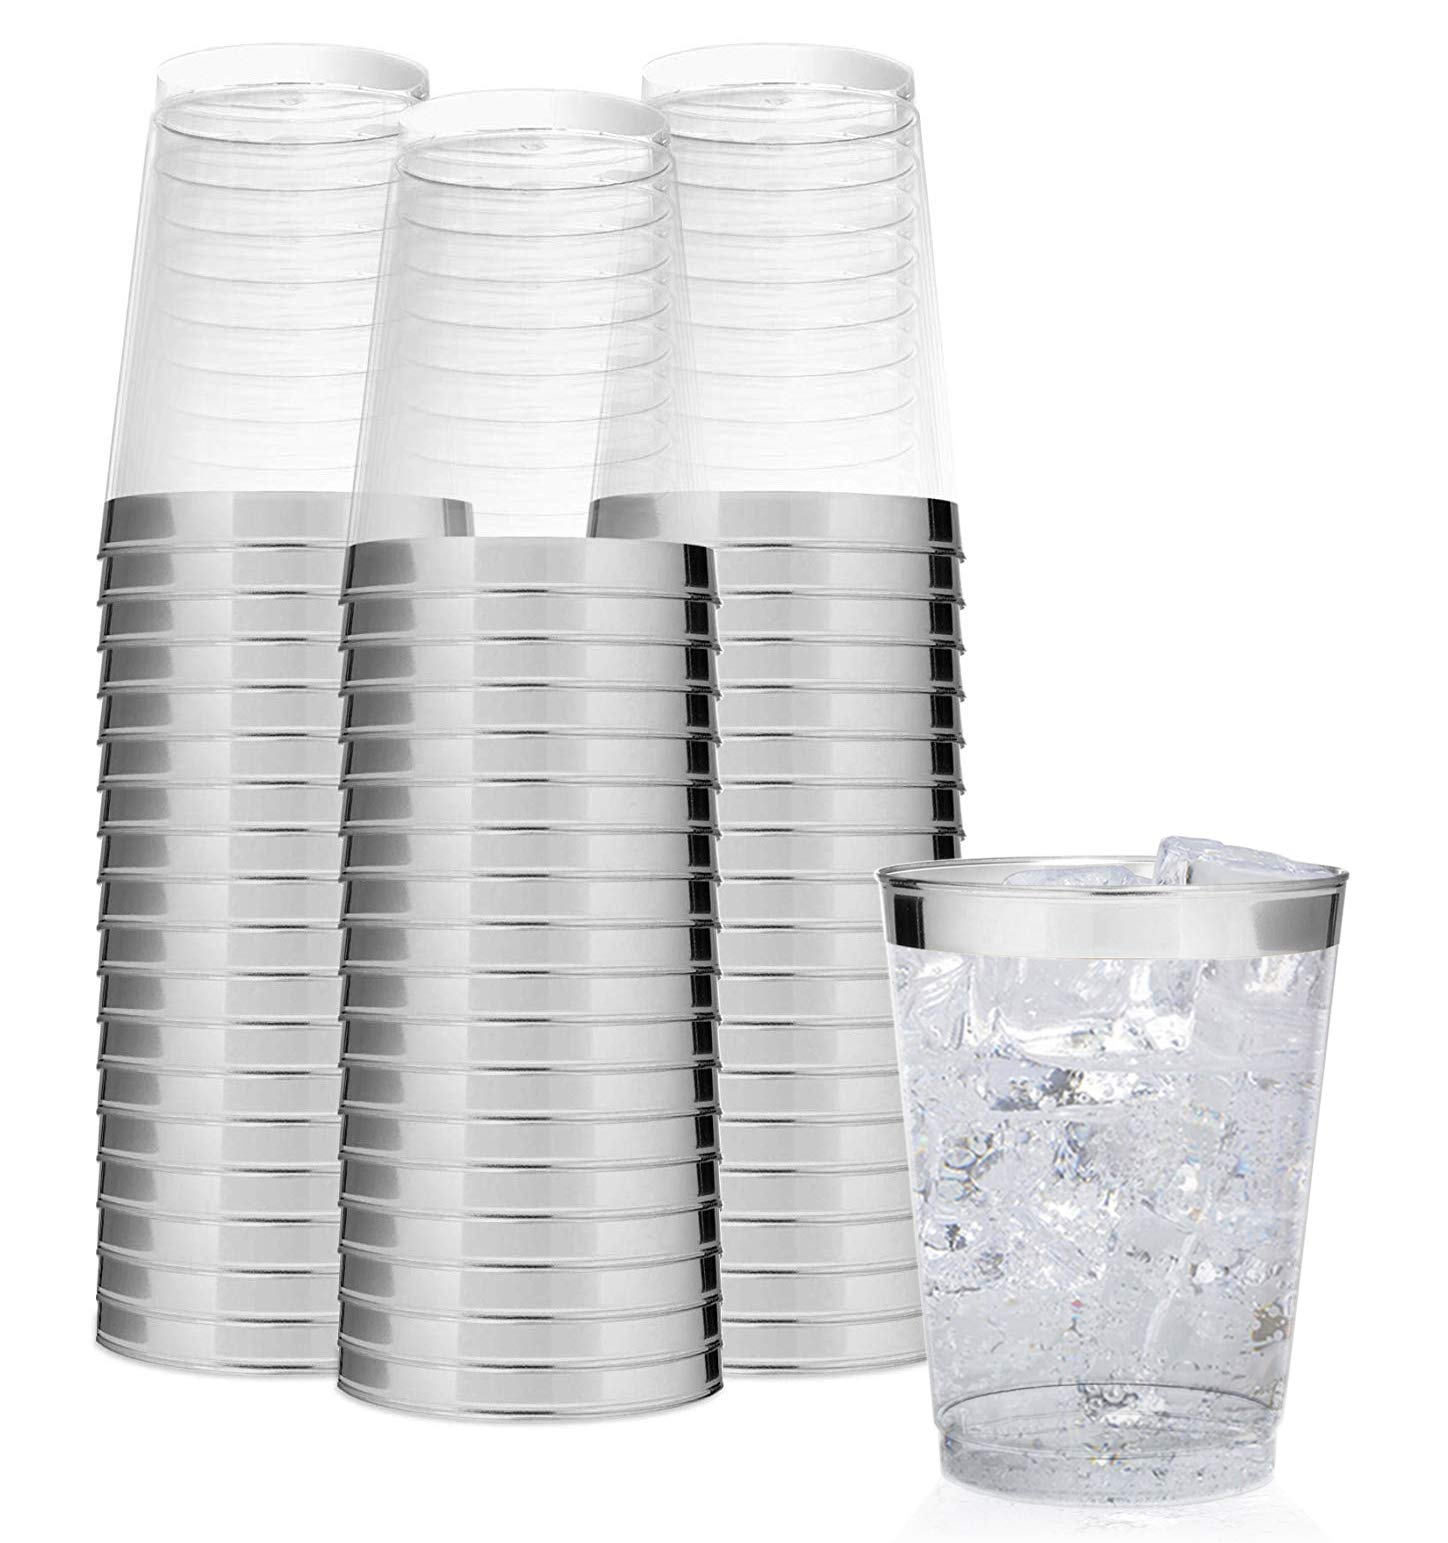 Elegant Silver Rimmed 14 Ounce Clear Plastic Tumblers Fancy Disposable Cups with Silver Rim Prefect for Holiday Party Wedding and Everyday Occasions 100 Pack